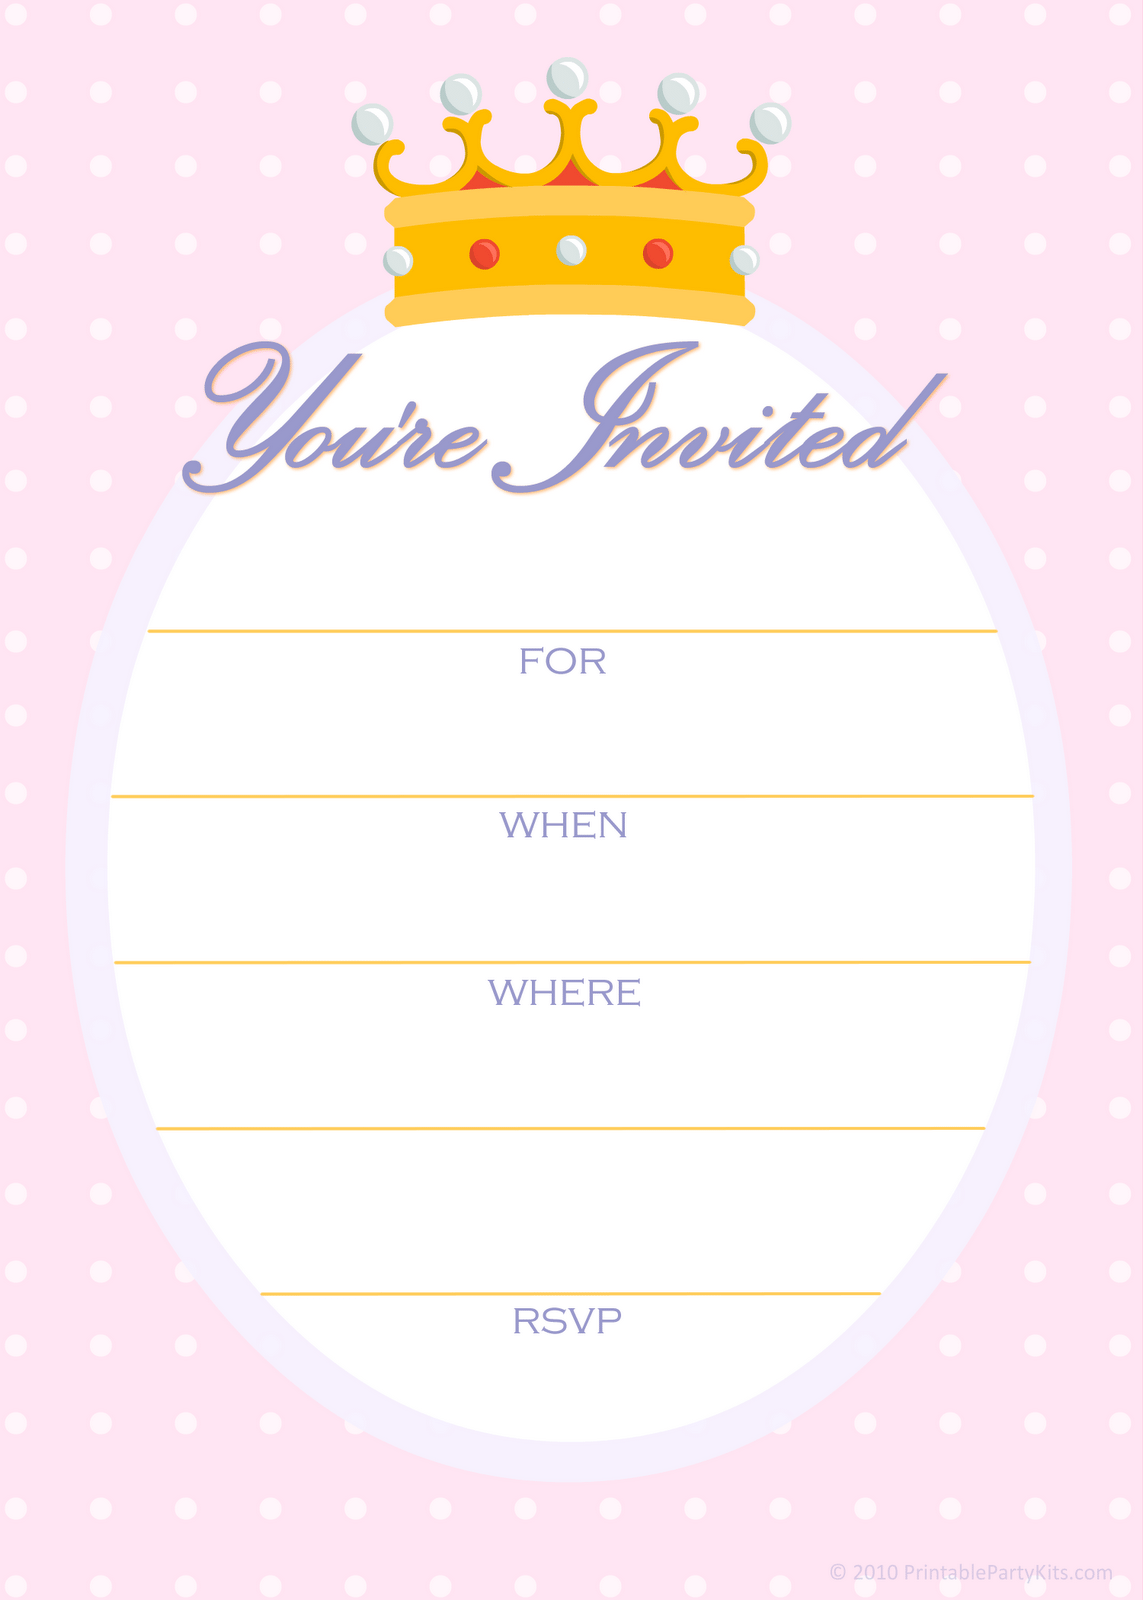 Free Printable Pool Party Invitations for your inspiration to make invitation template look beautiful